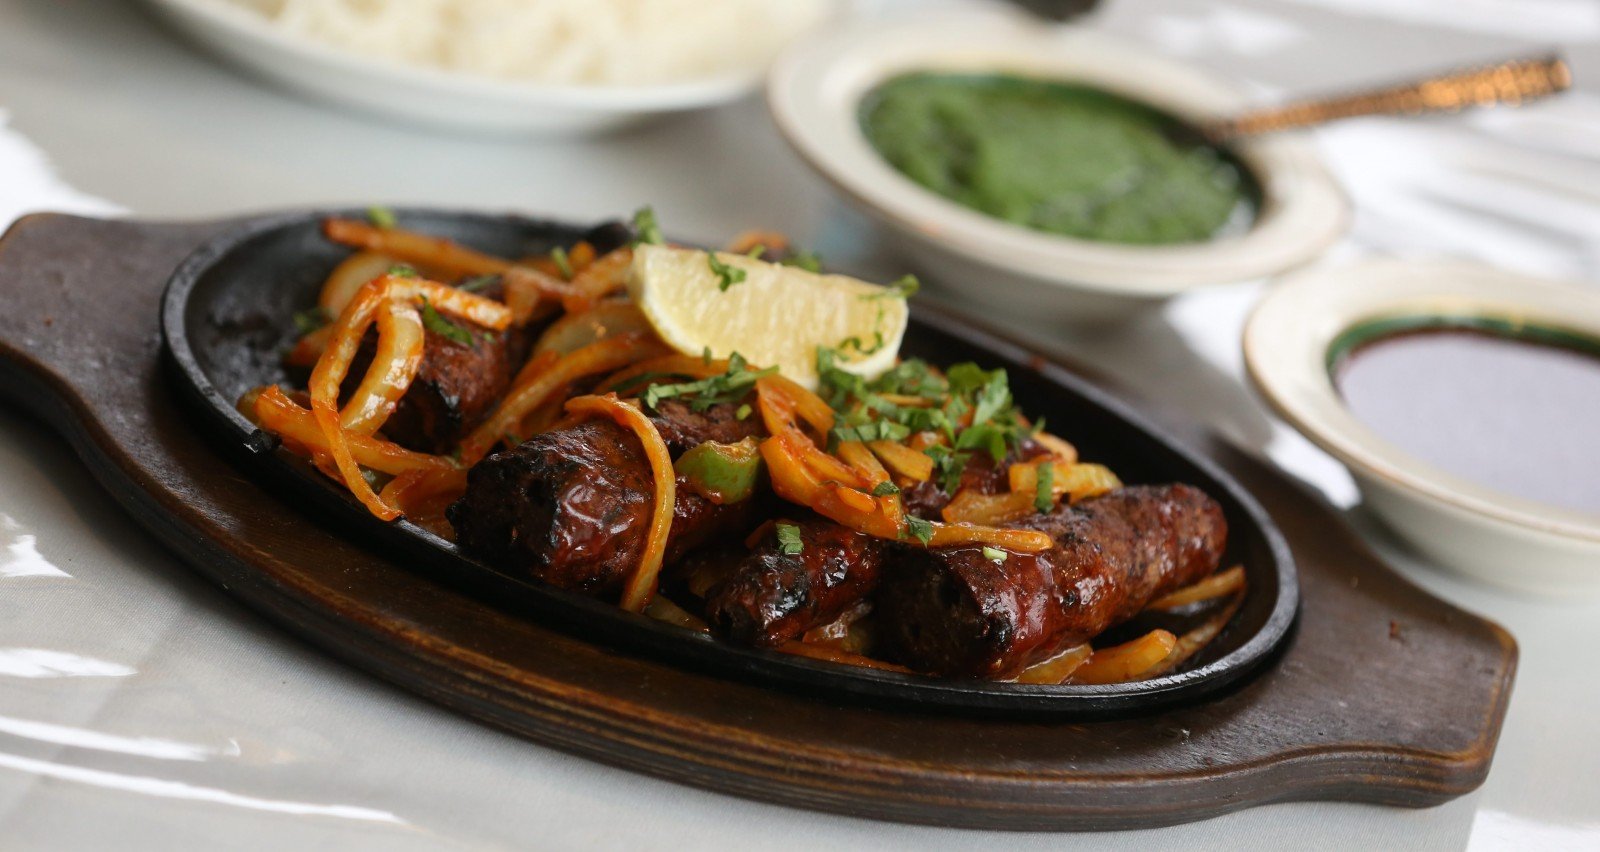 Ground lamb prepared with ginger, garlic and herbs from New Jewel of India. (Sharon Cantillon/Buffalo News)